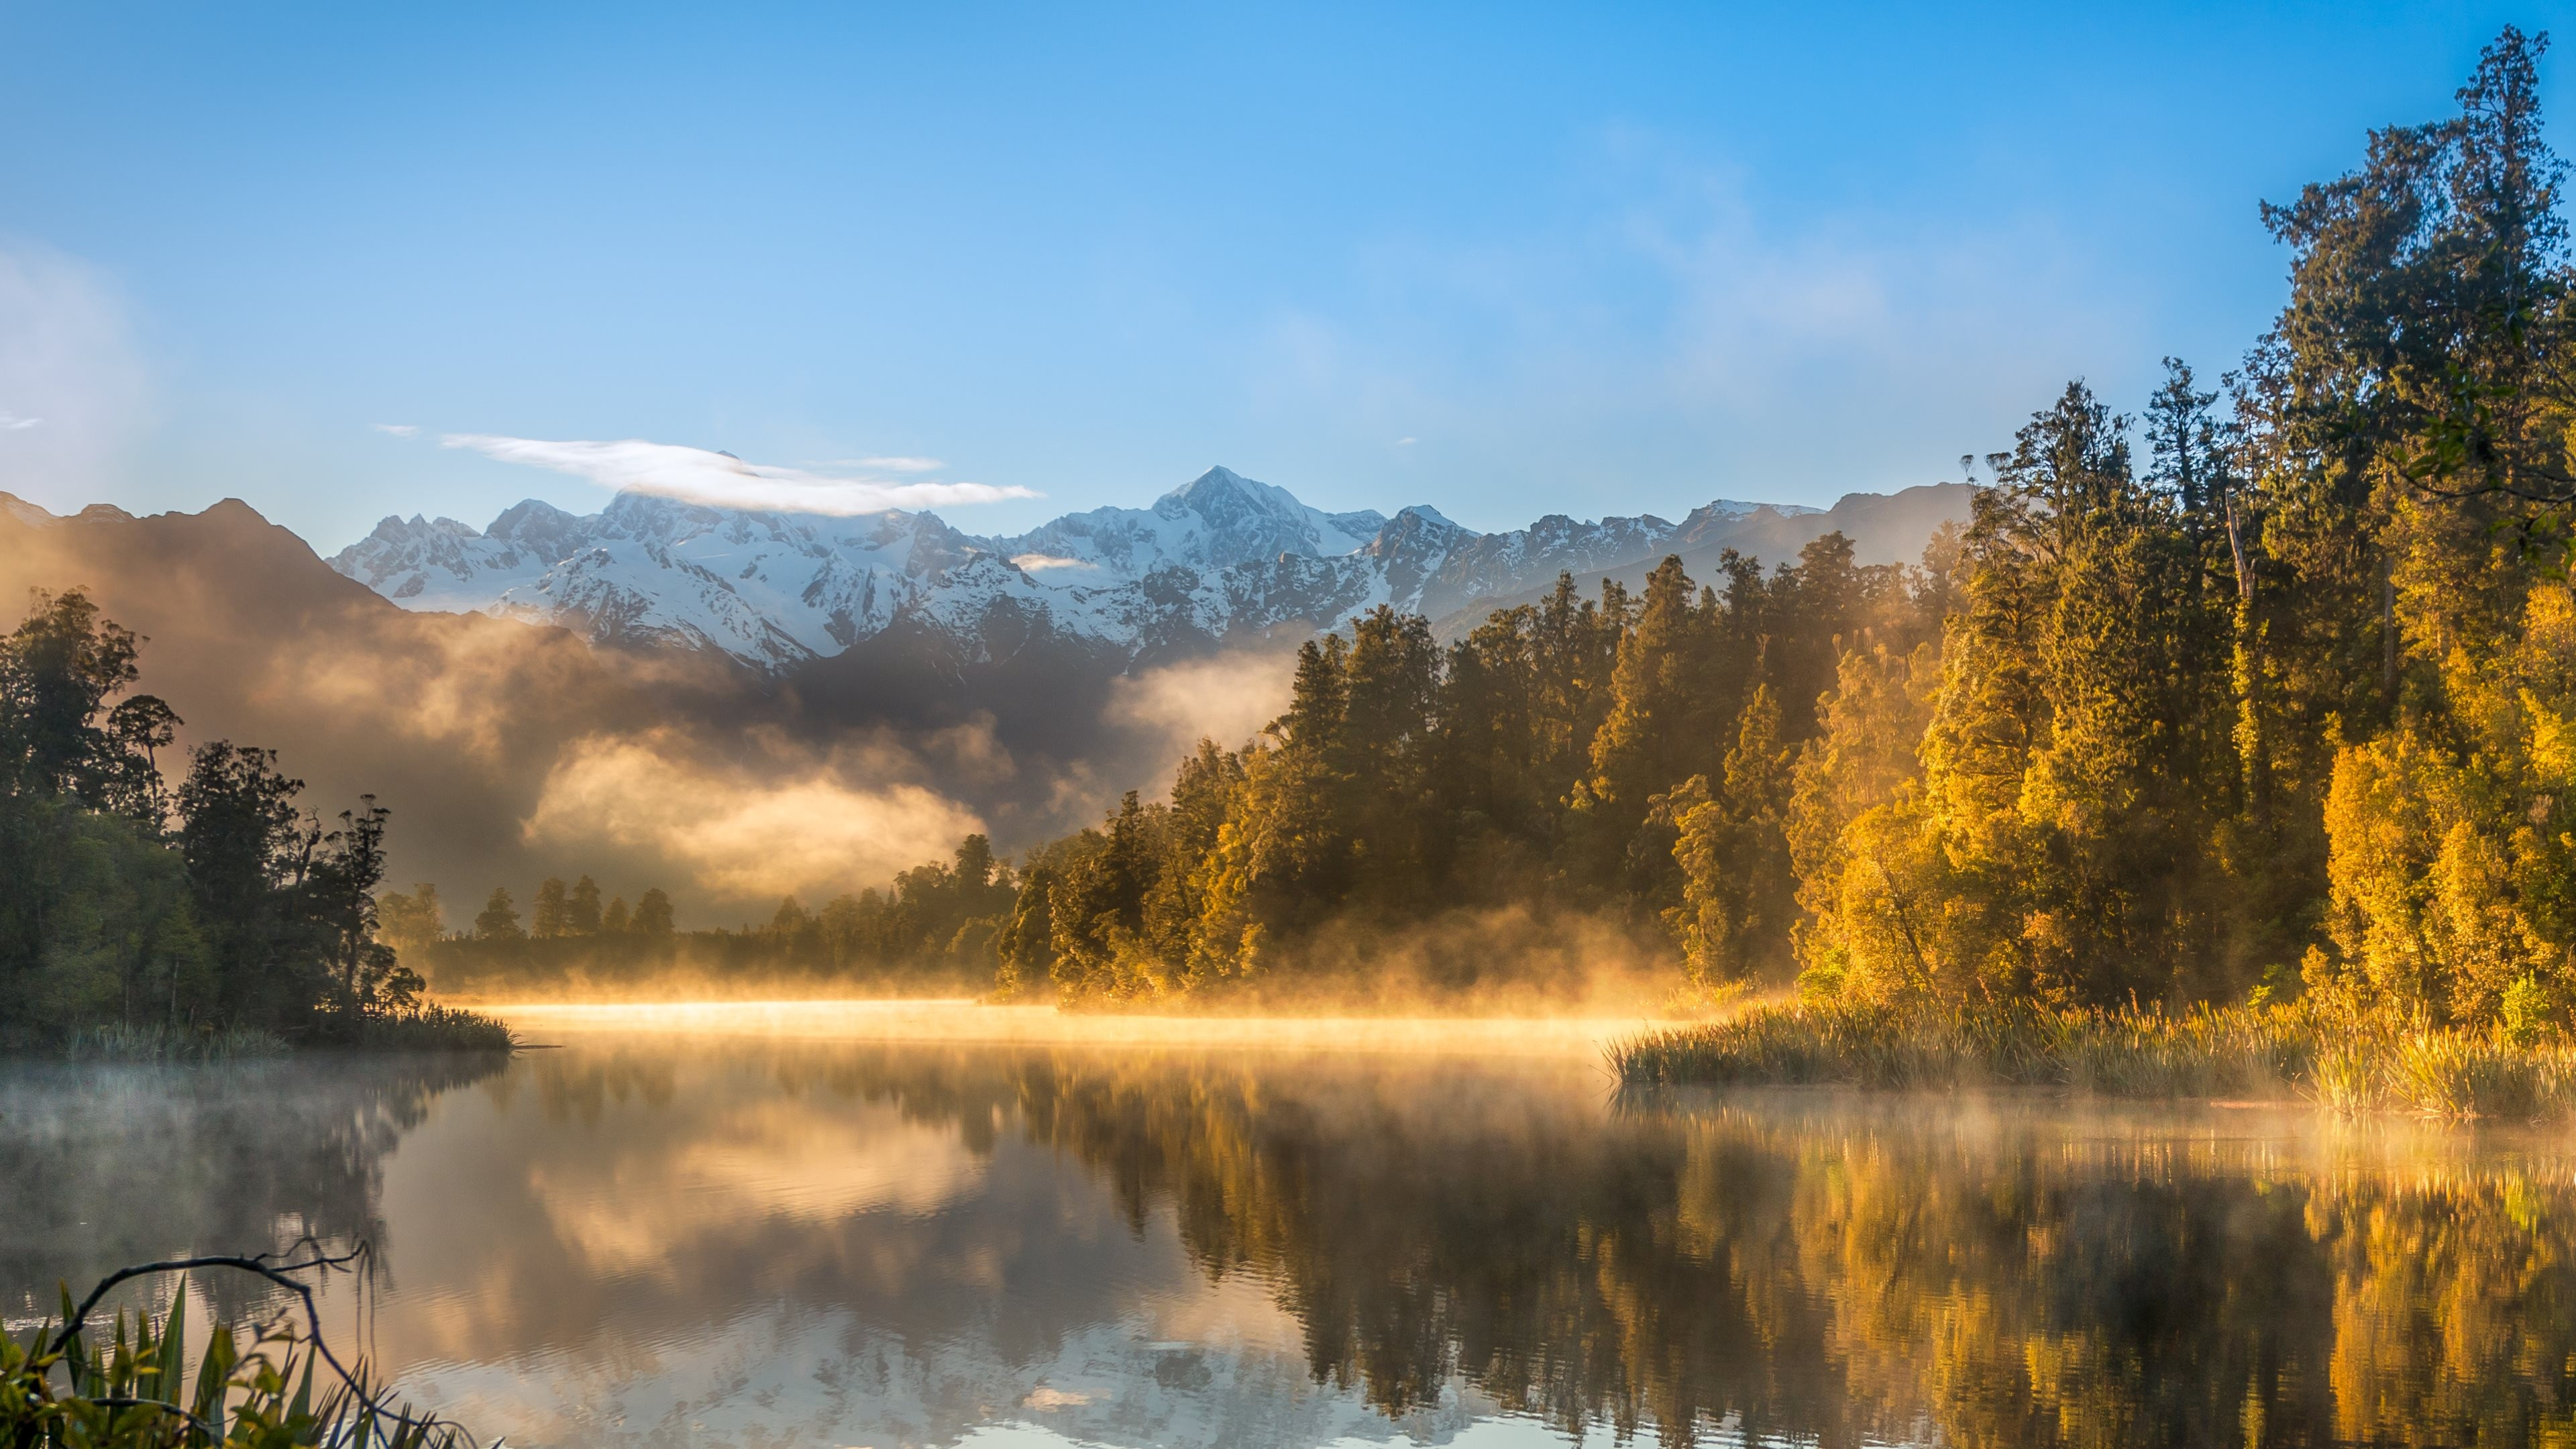 Wallpaper Autumn Fog Forest Lake Mountains 4k Nature